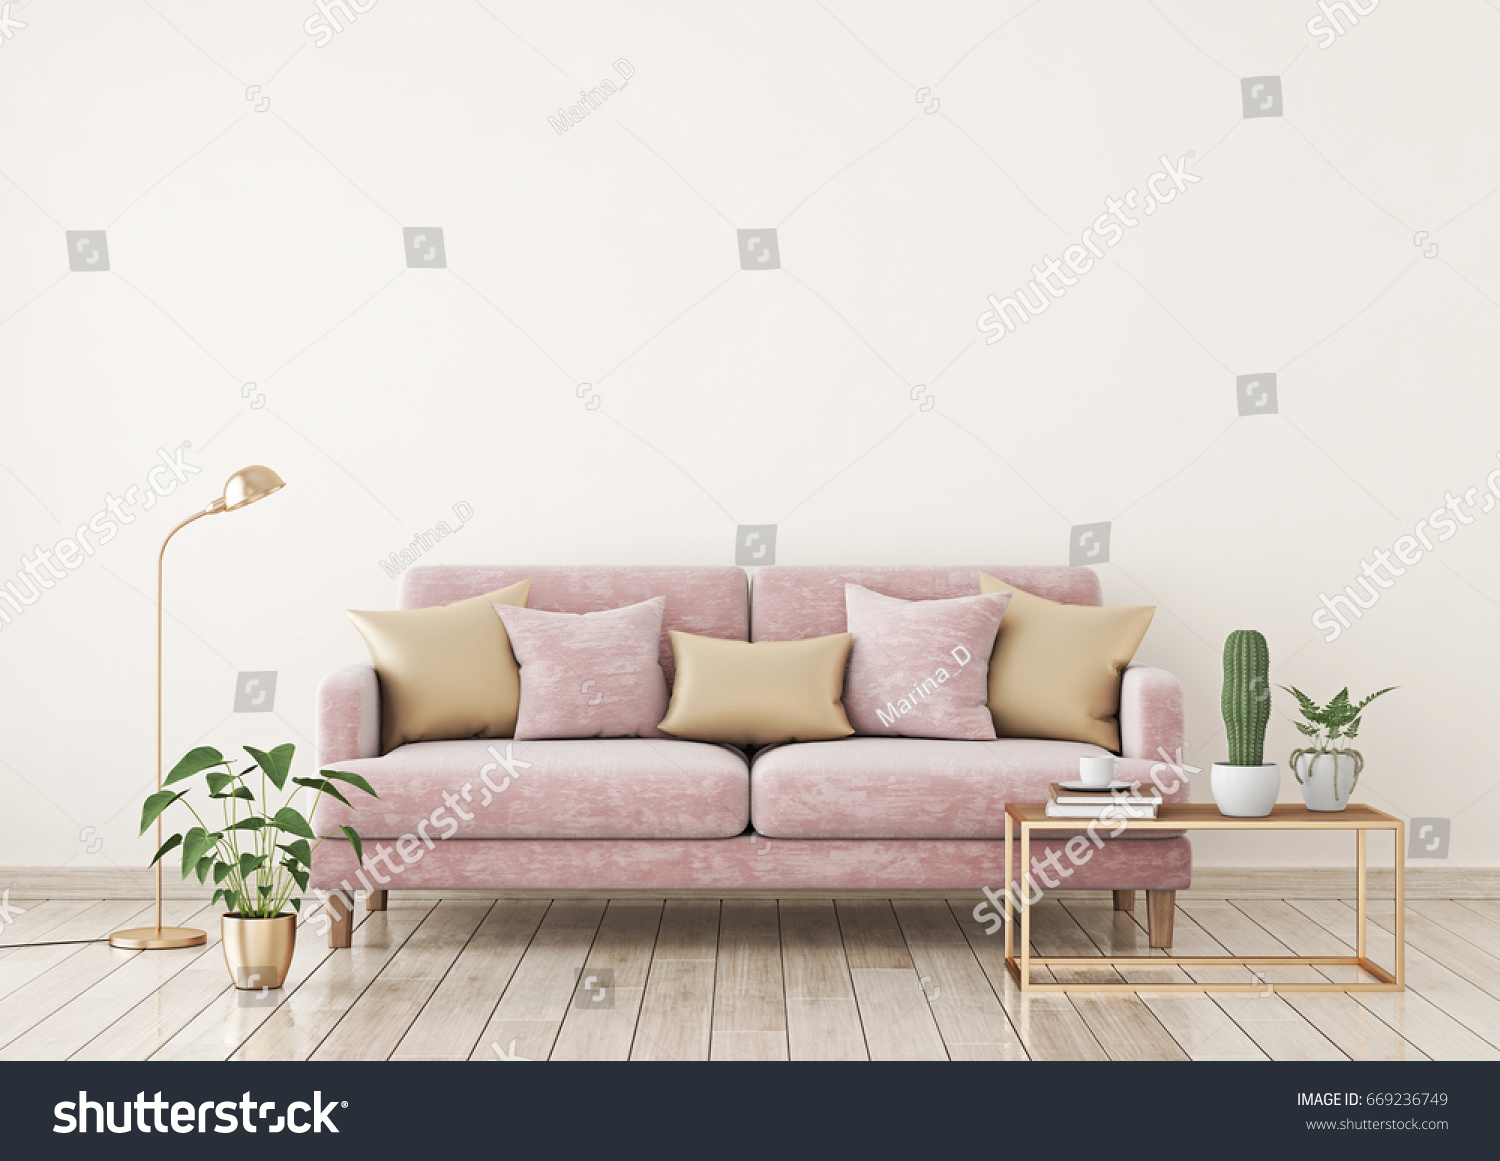 Livingroom Interior Wall Mock Up With Pink Fabric Sofa And Pillows On Light Beige Background